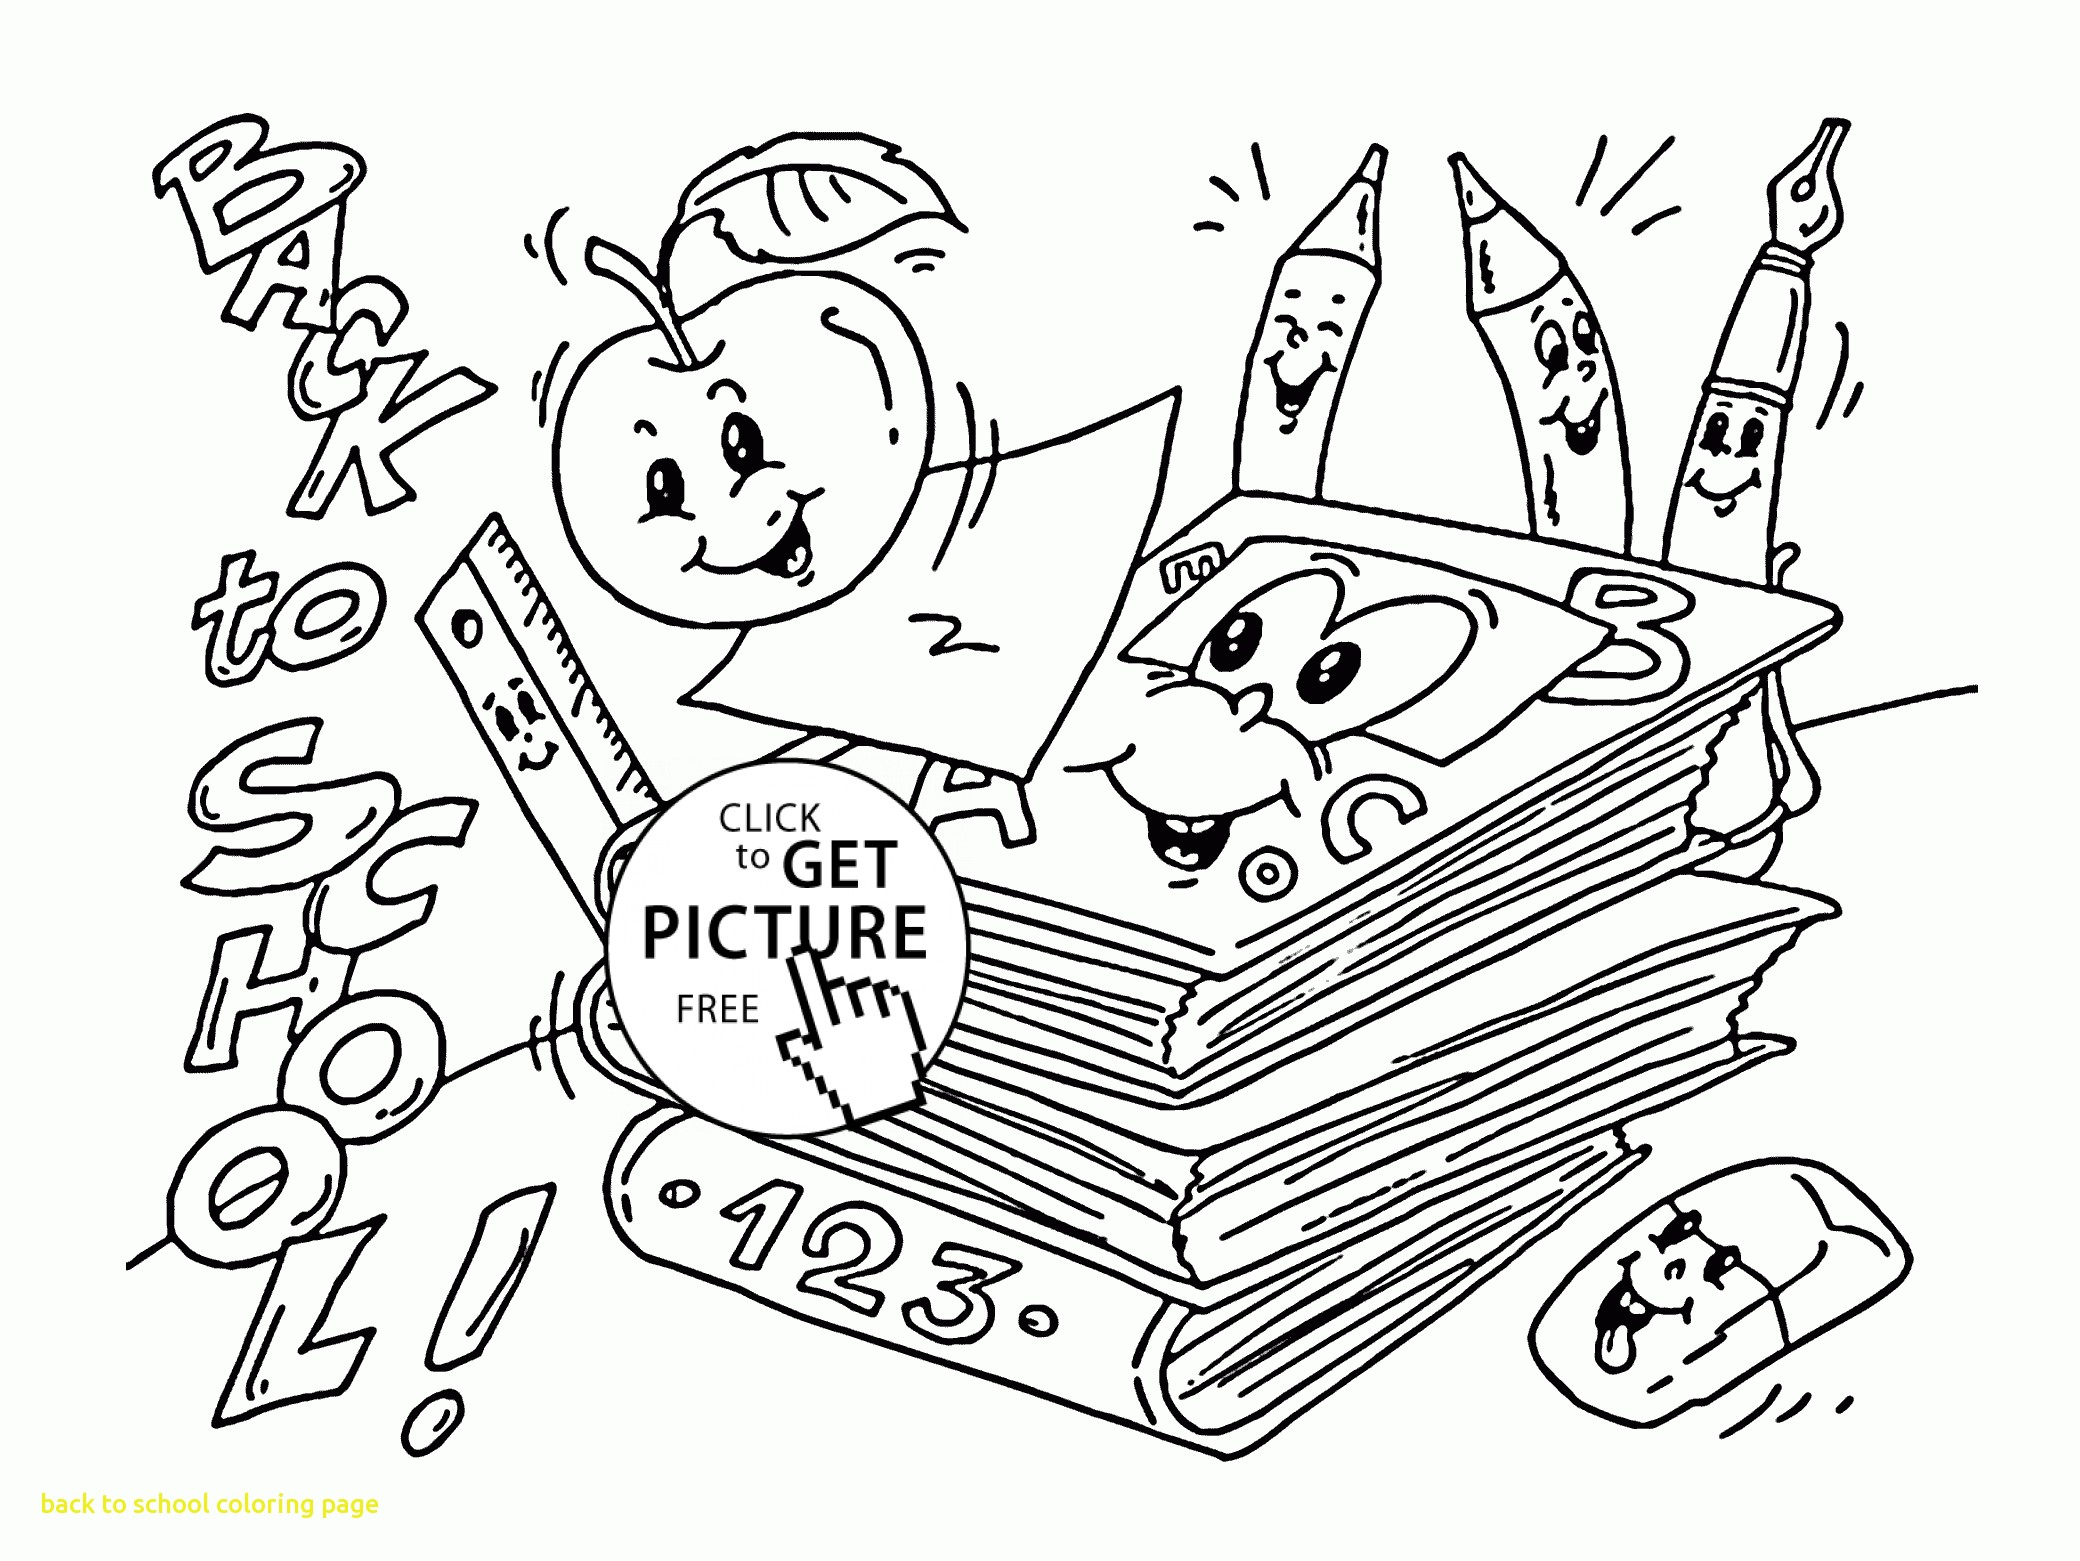 Back To School Coloring Pages For Second Grade At Getcolorings